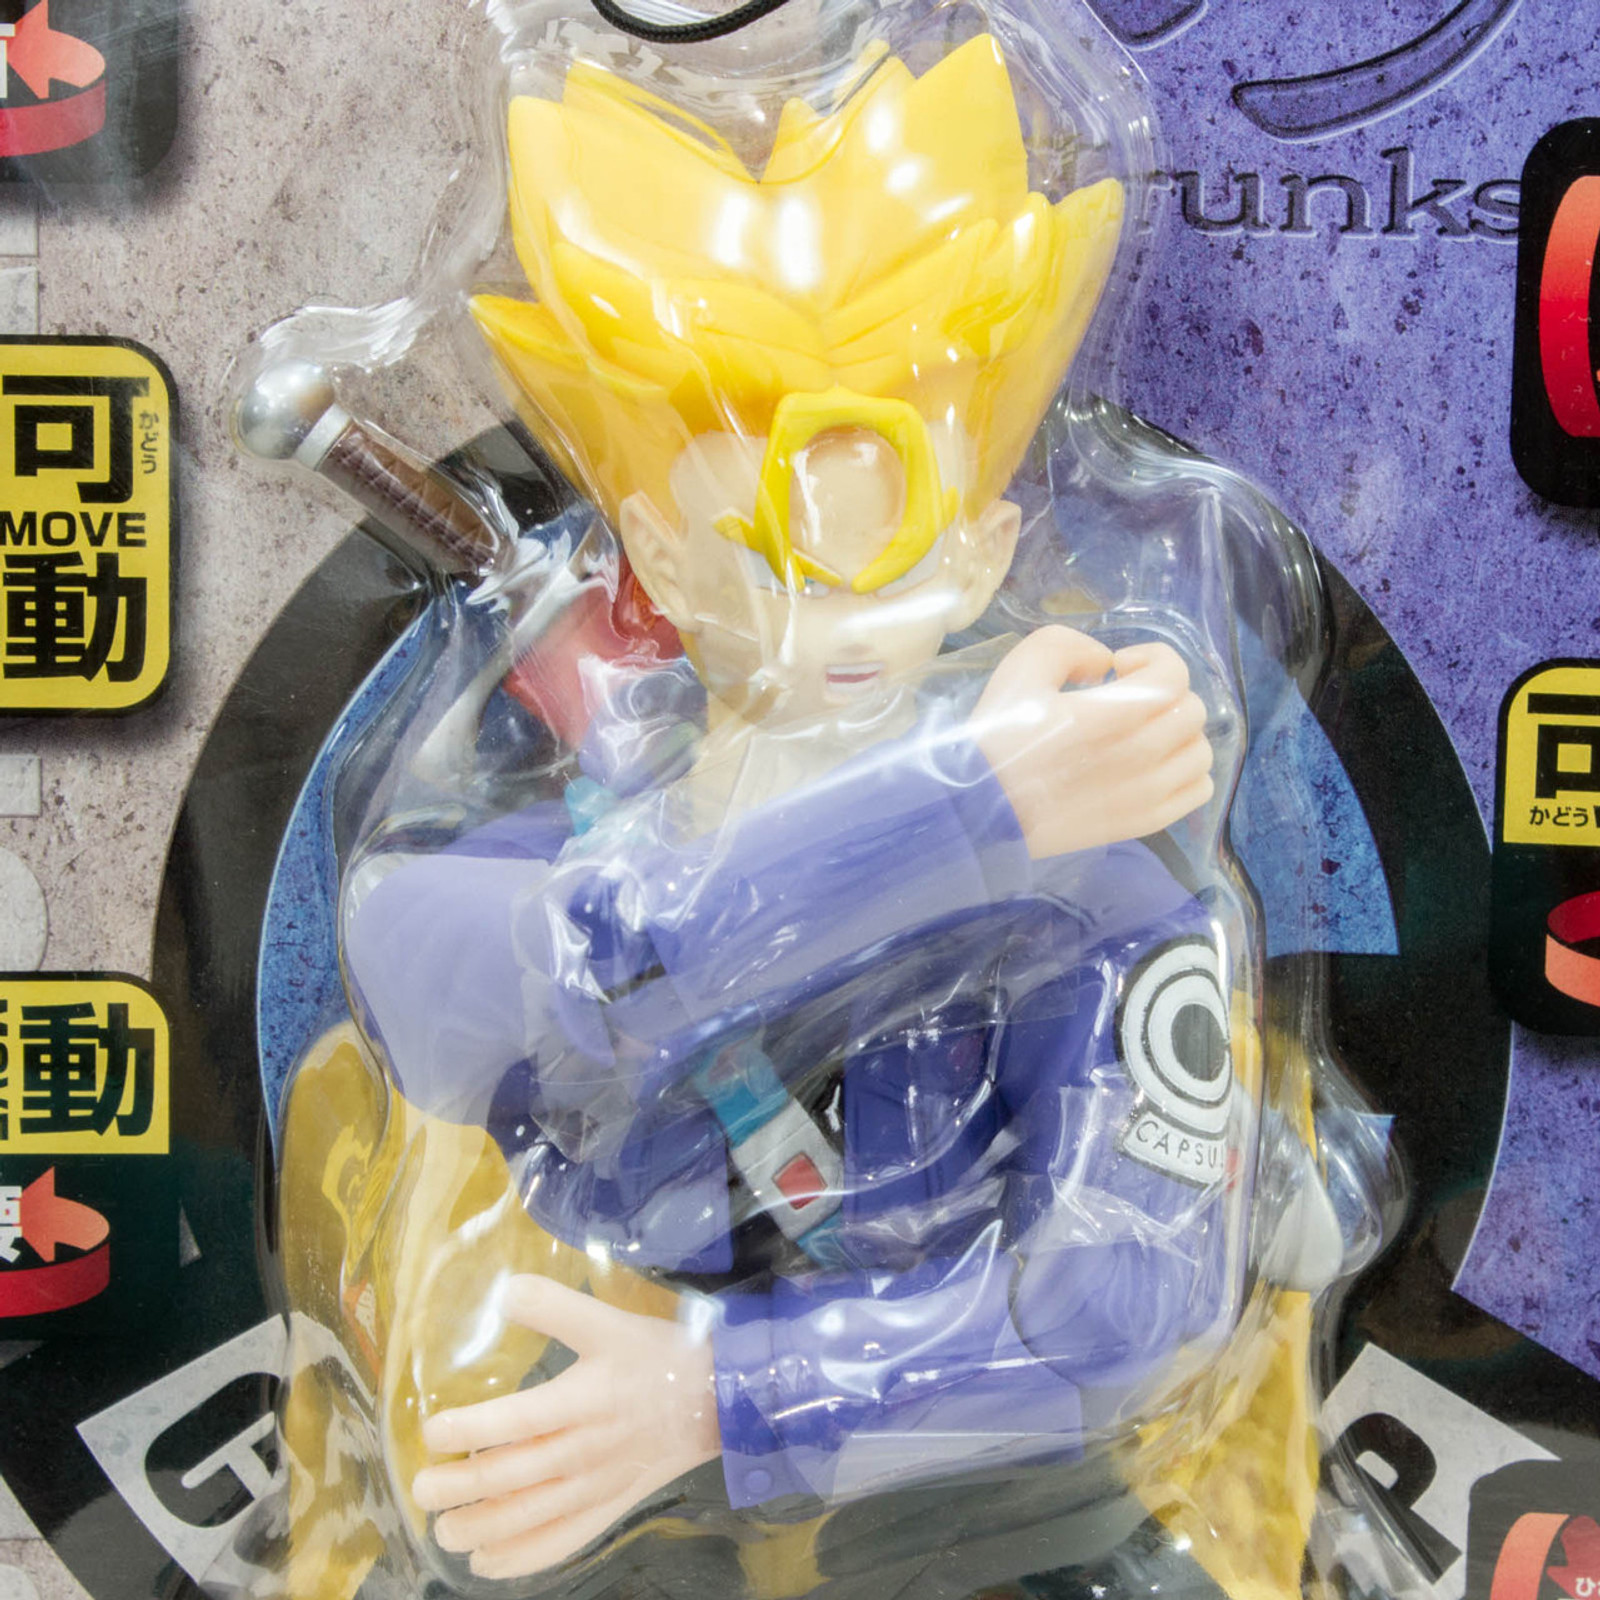 Dragon Ball Z Trunks Action DX Sofubi Figure 3 Banpresto JAPAN ANIME MANGA